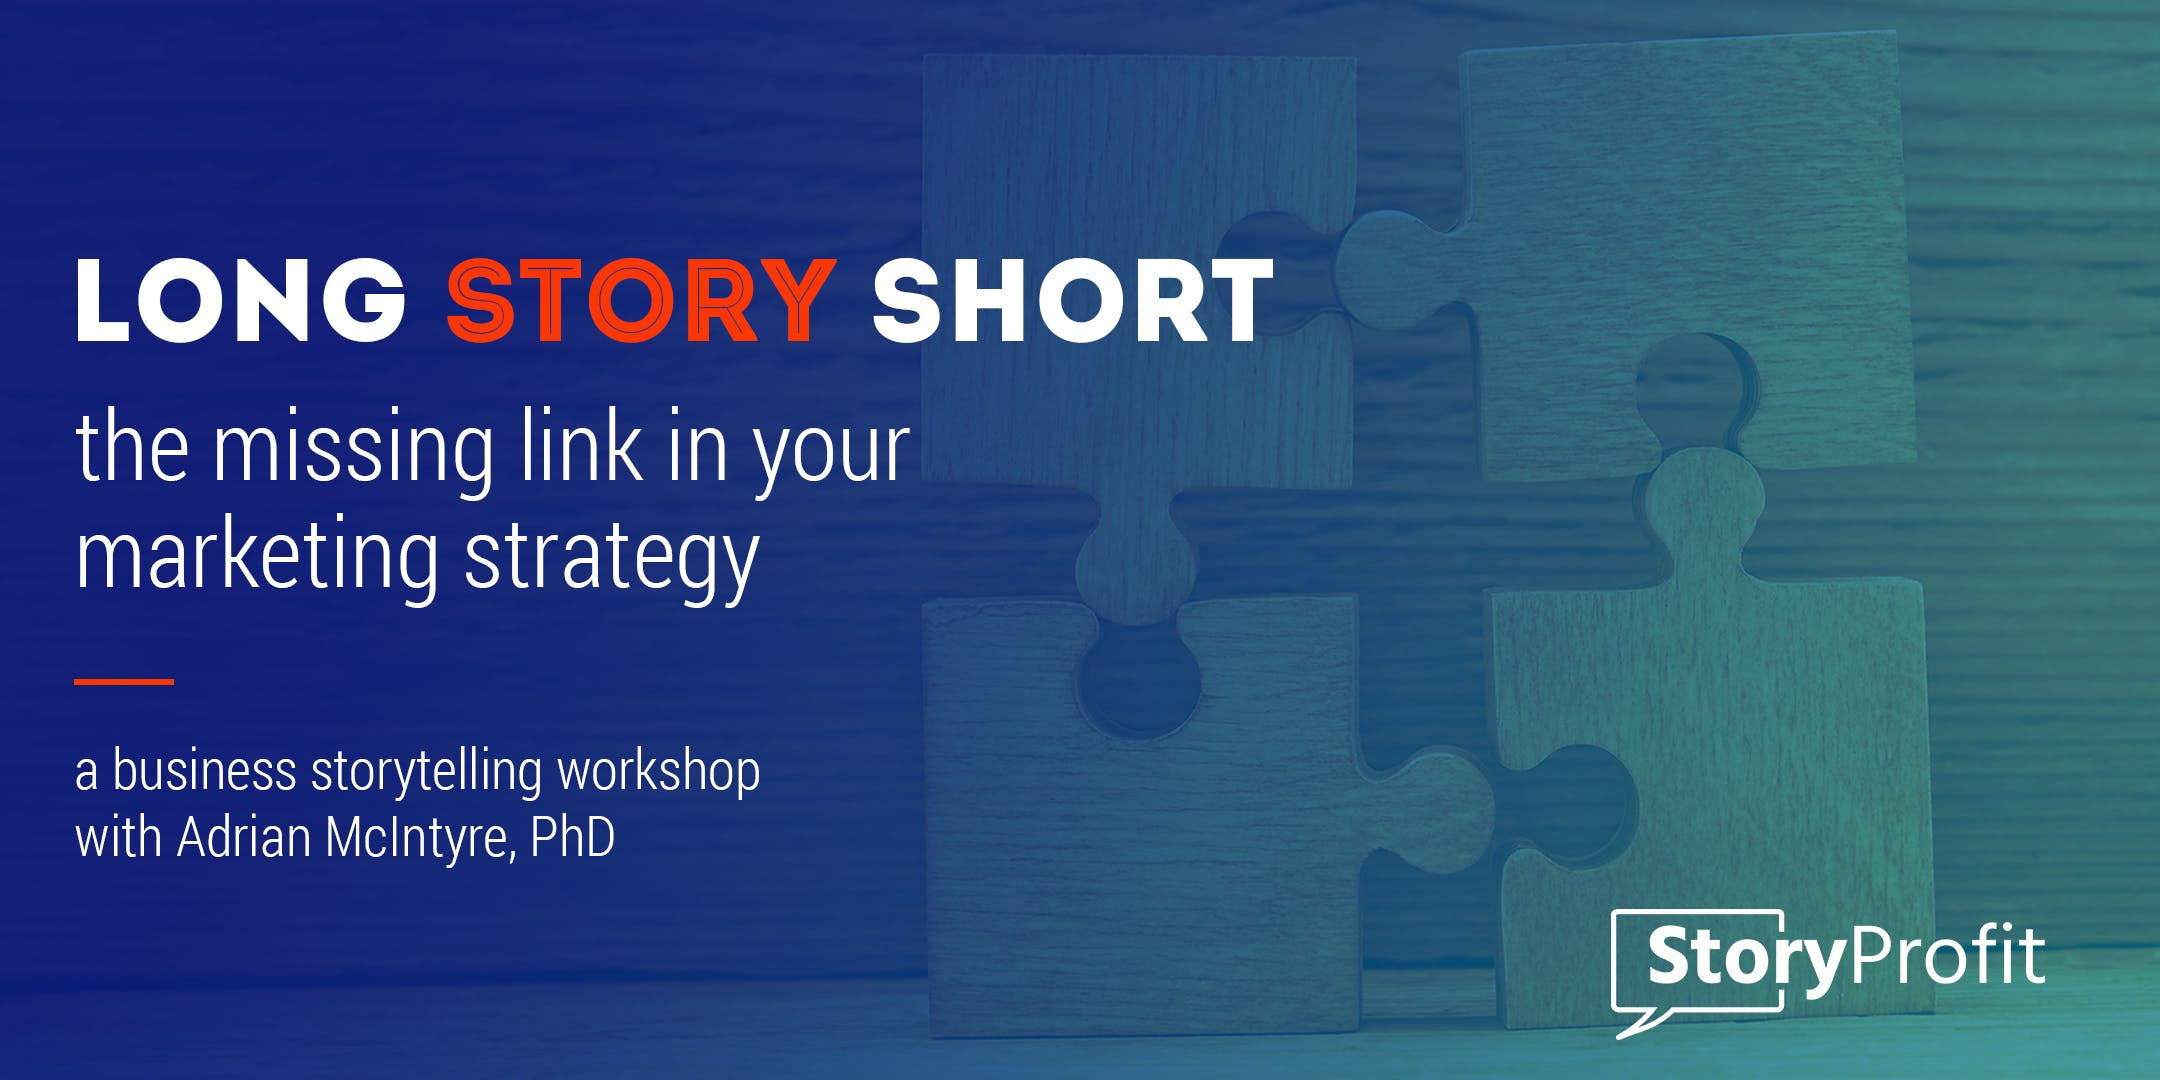 Long Story Short: The Missing Link in Your Marketing Strategy